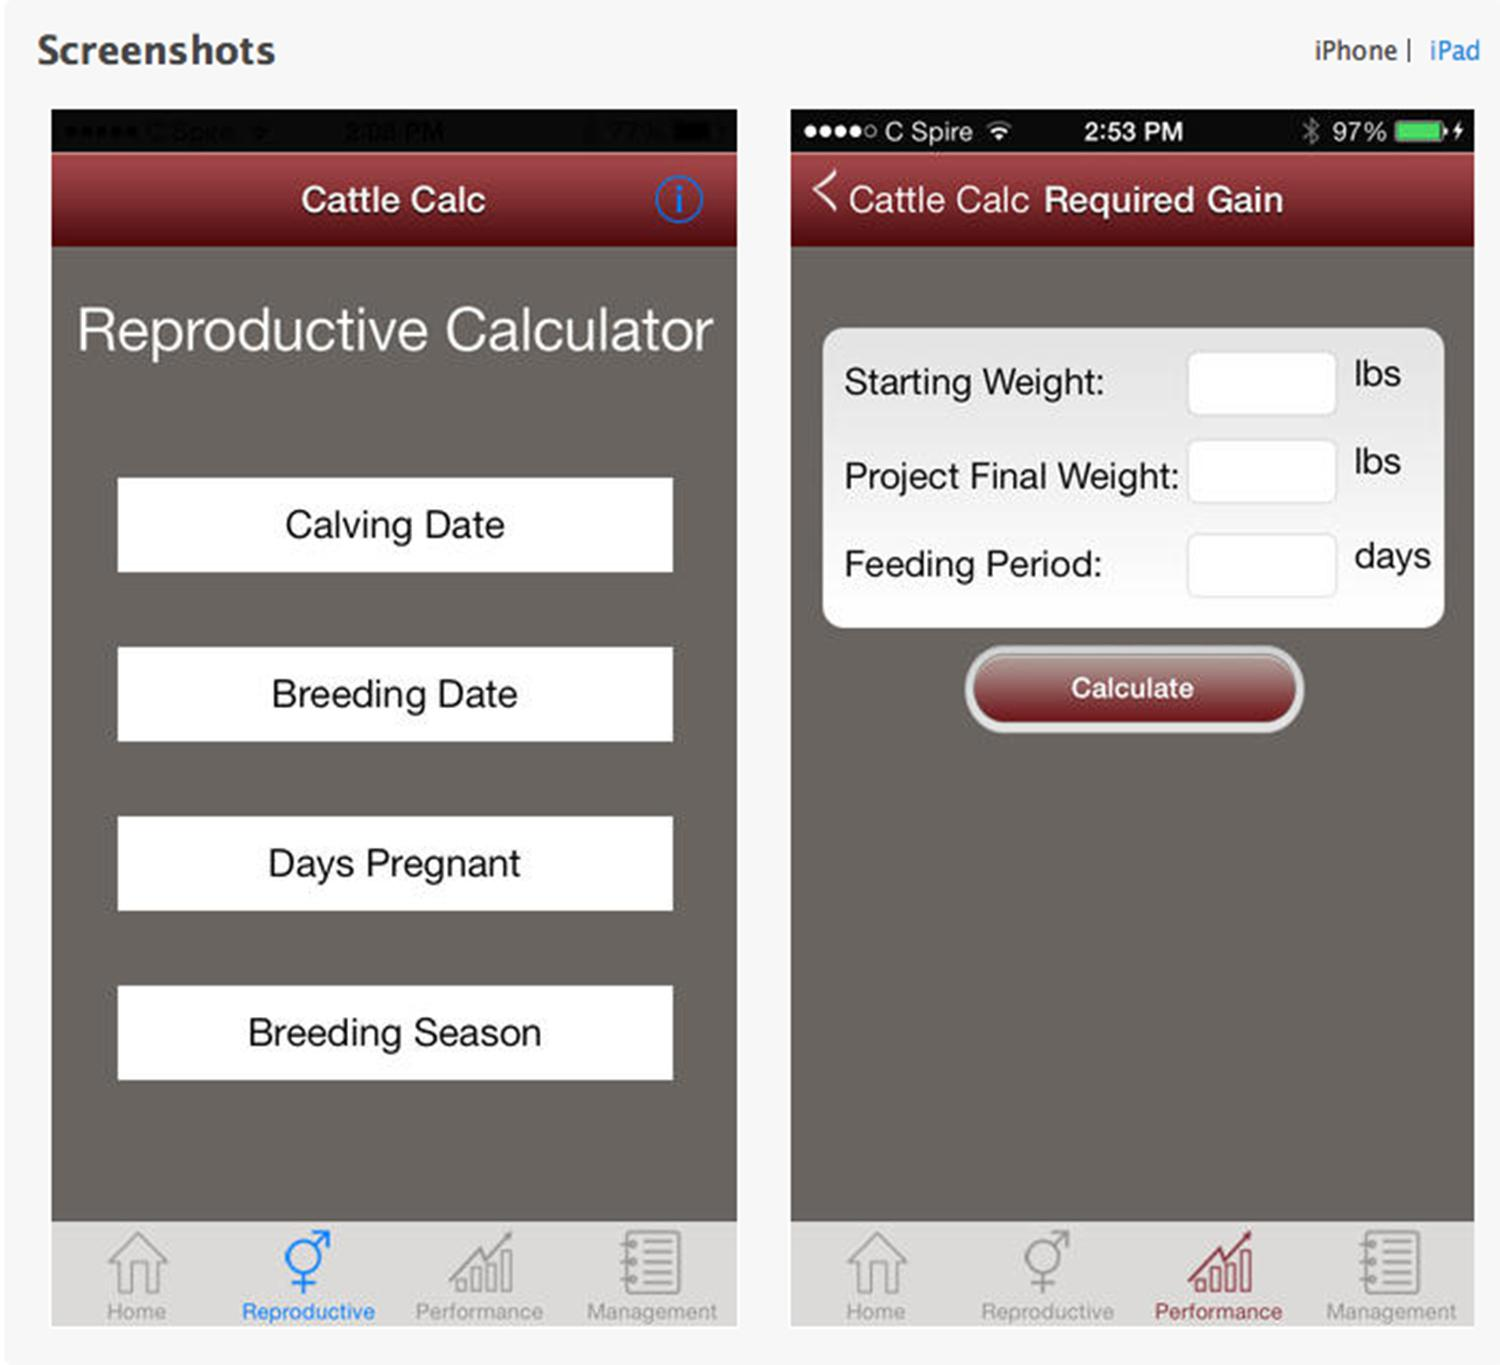 Here is a screenshot of the Android app for beef cattle producers.